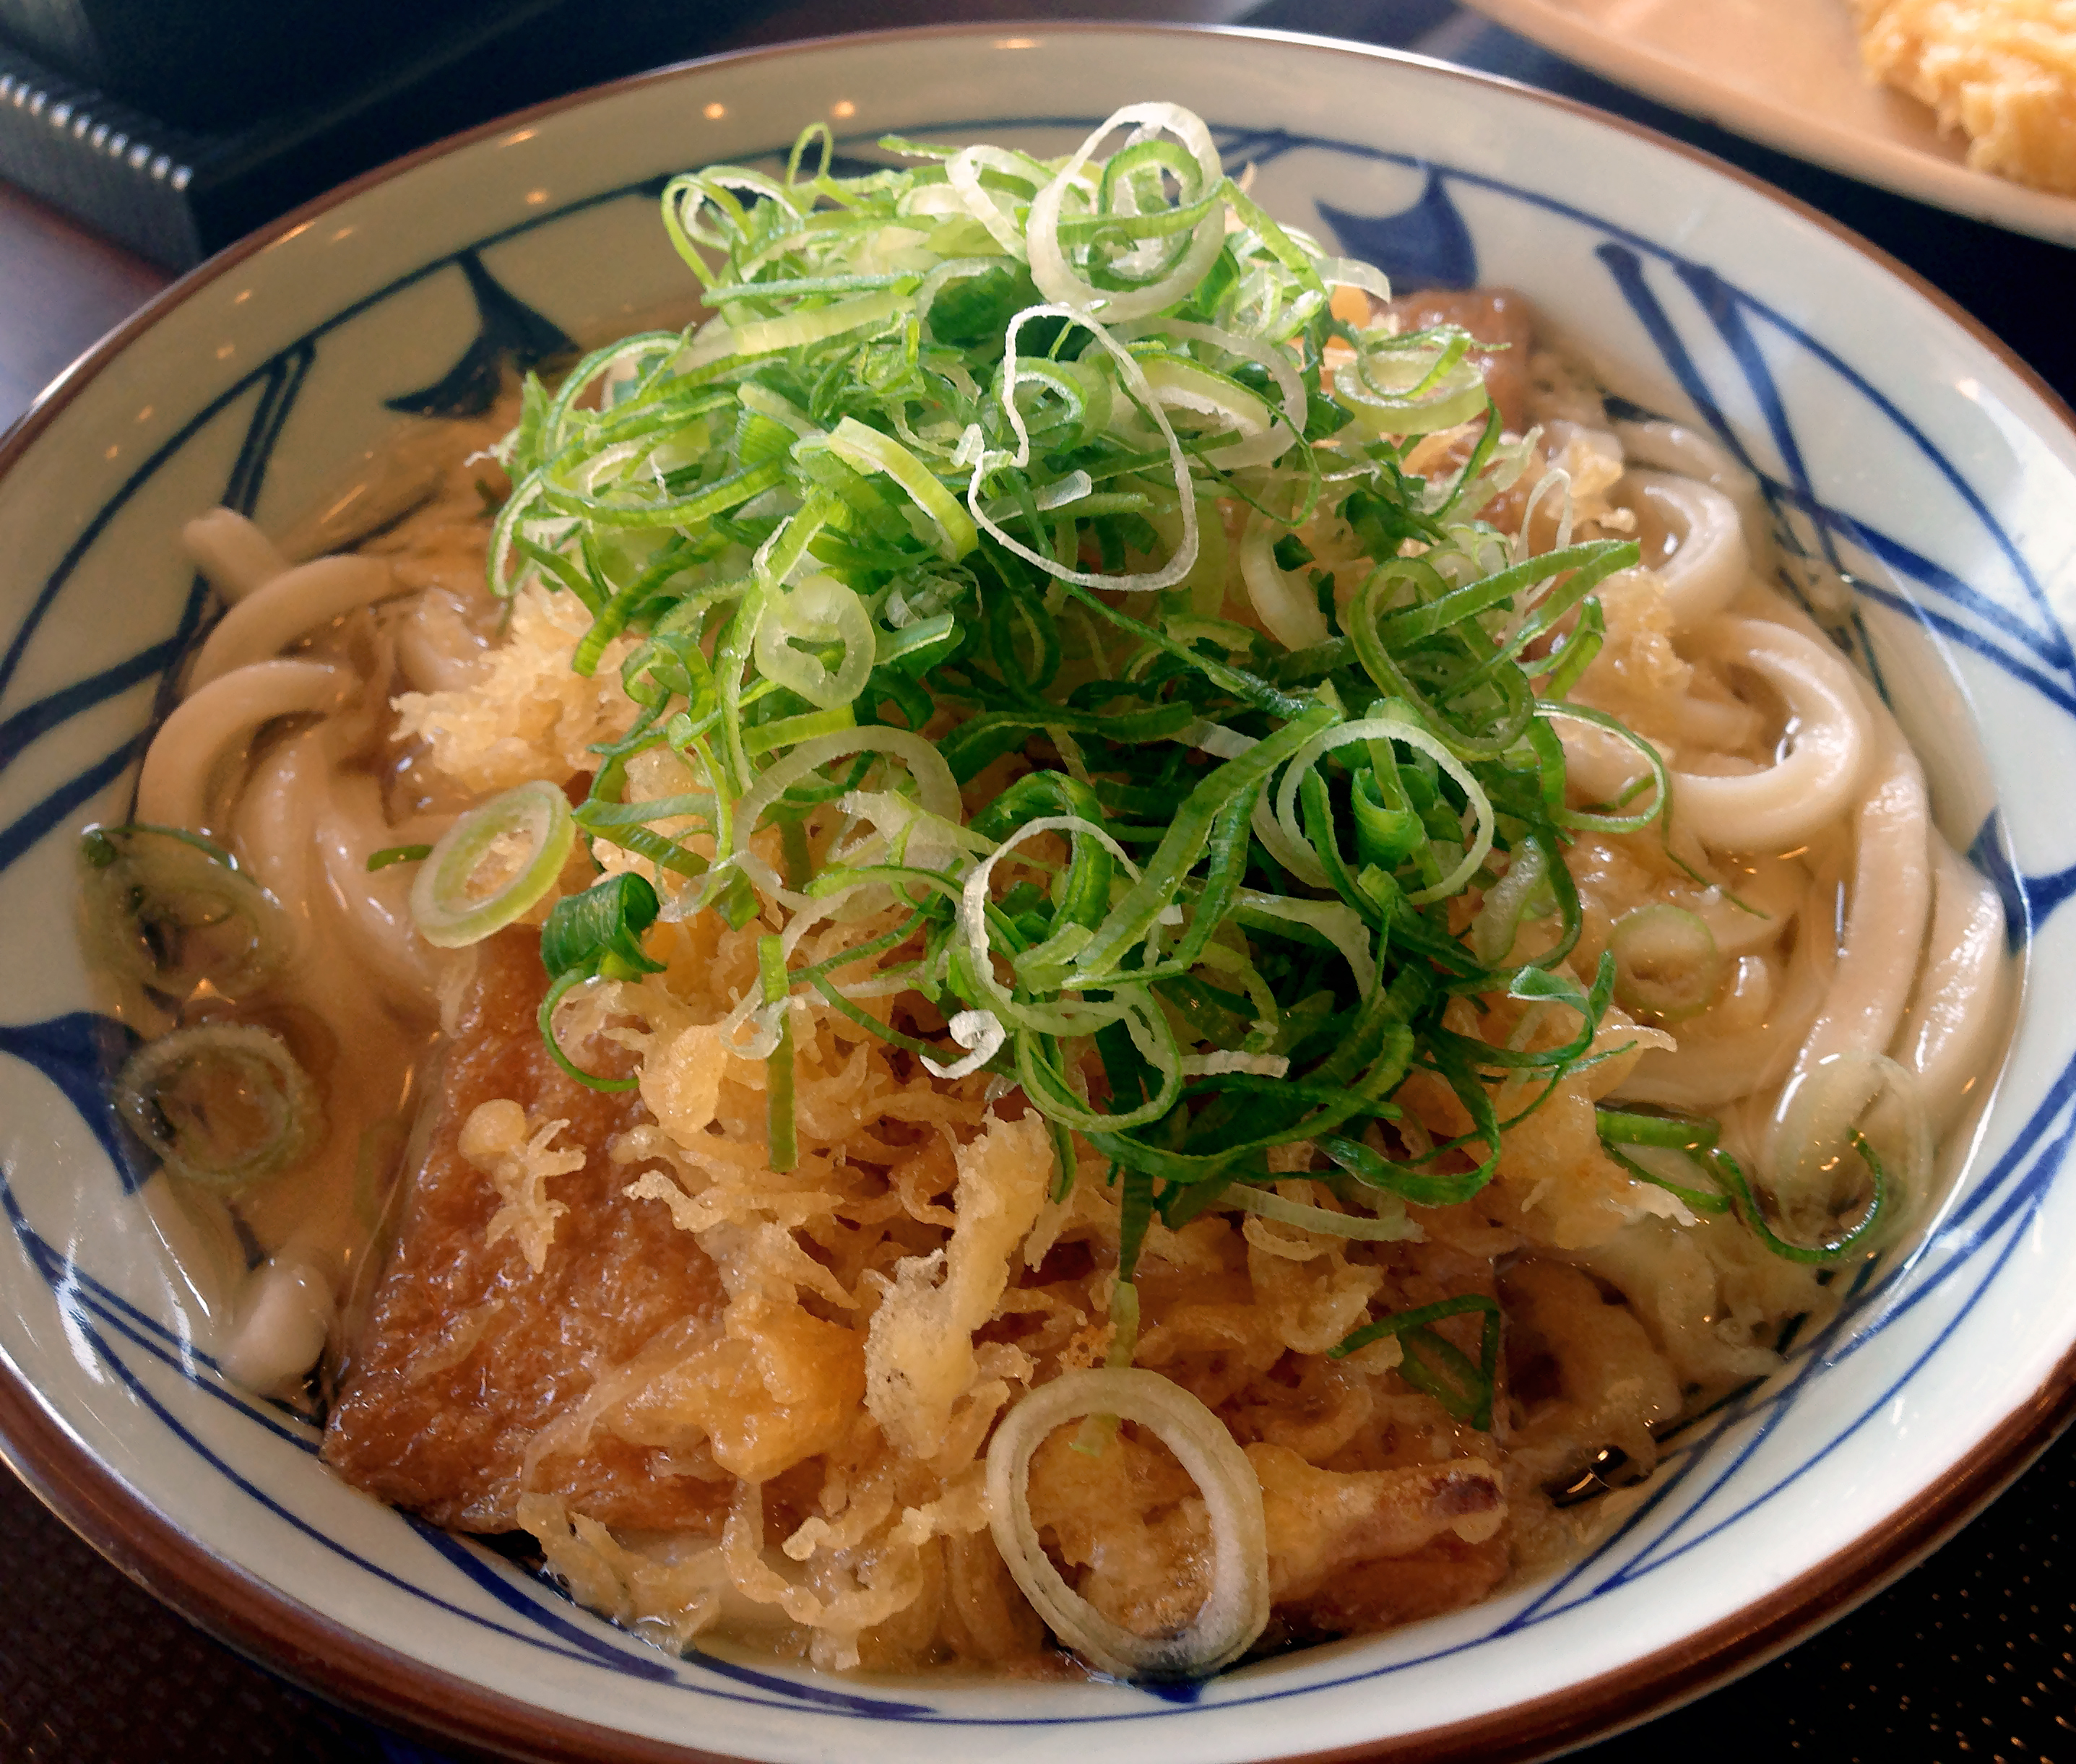 Toshikoshi New Year Noodles in Japan